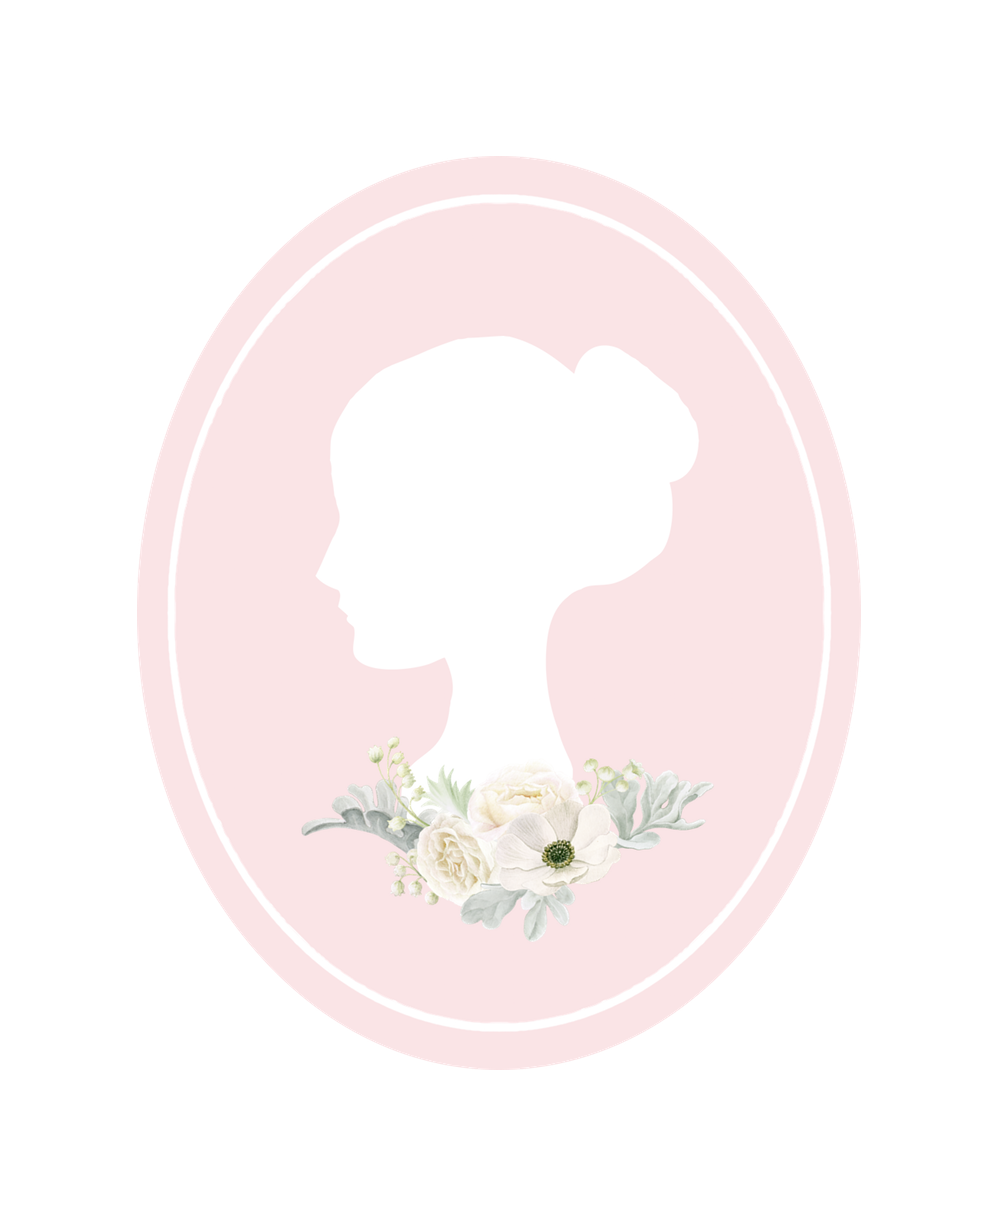 women badge.png